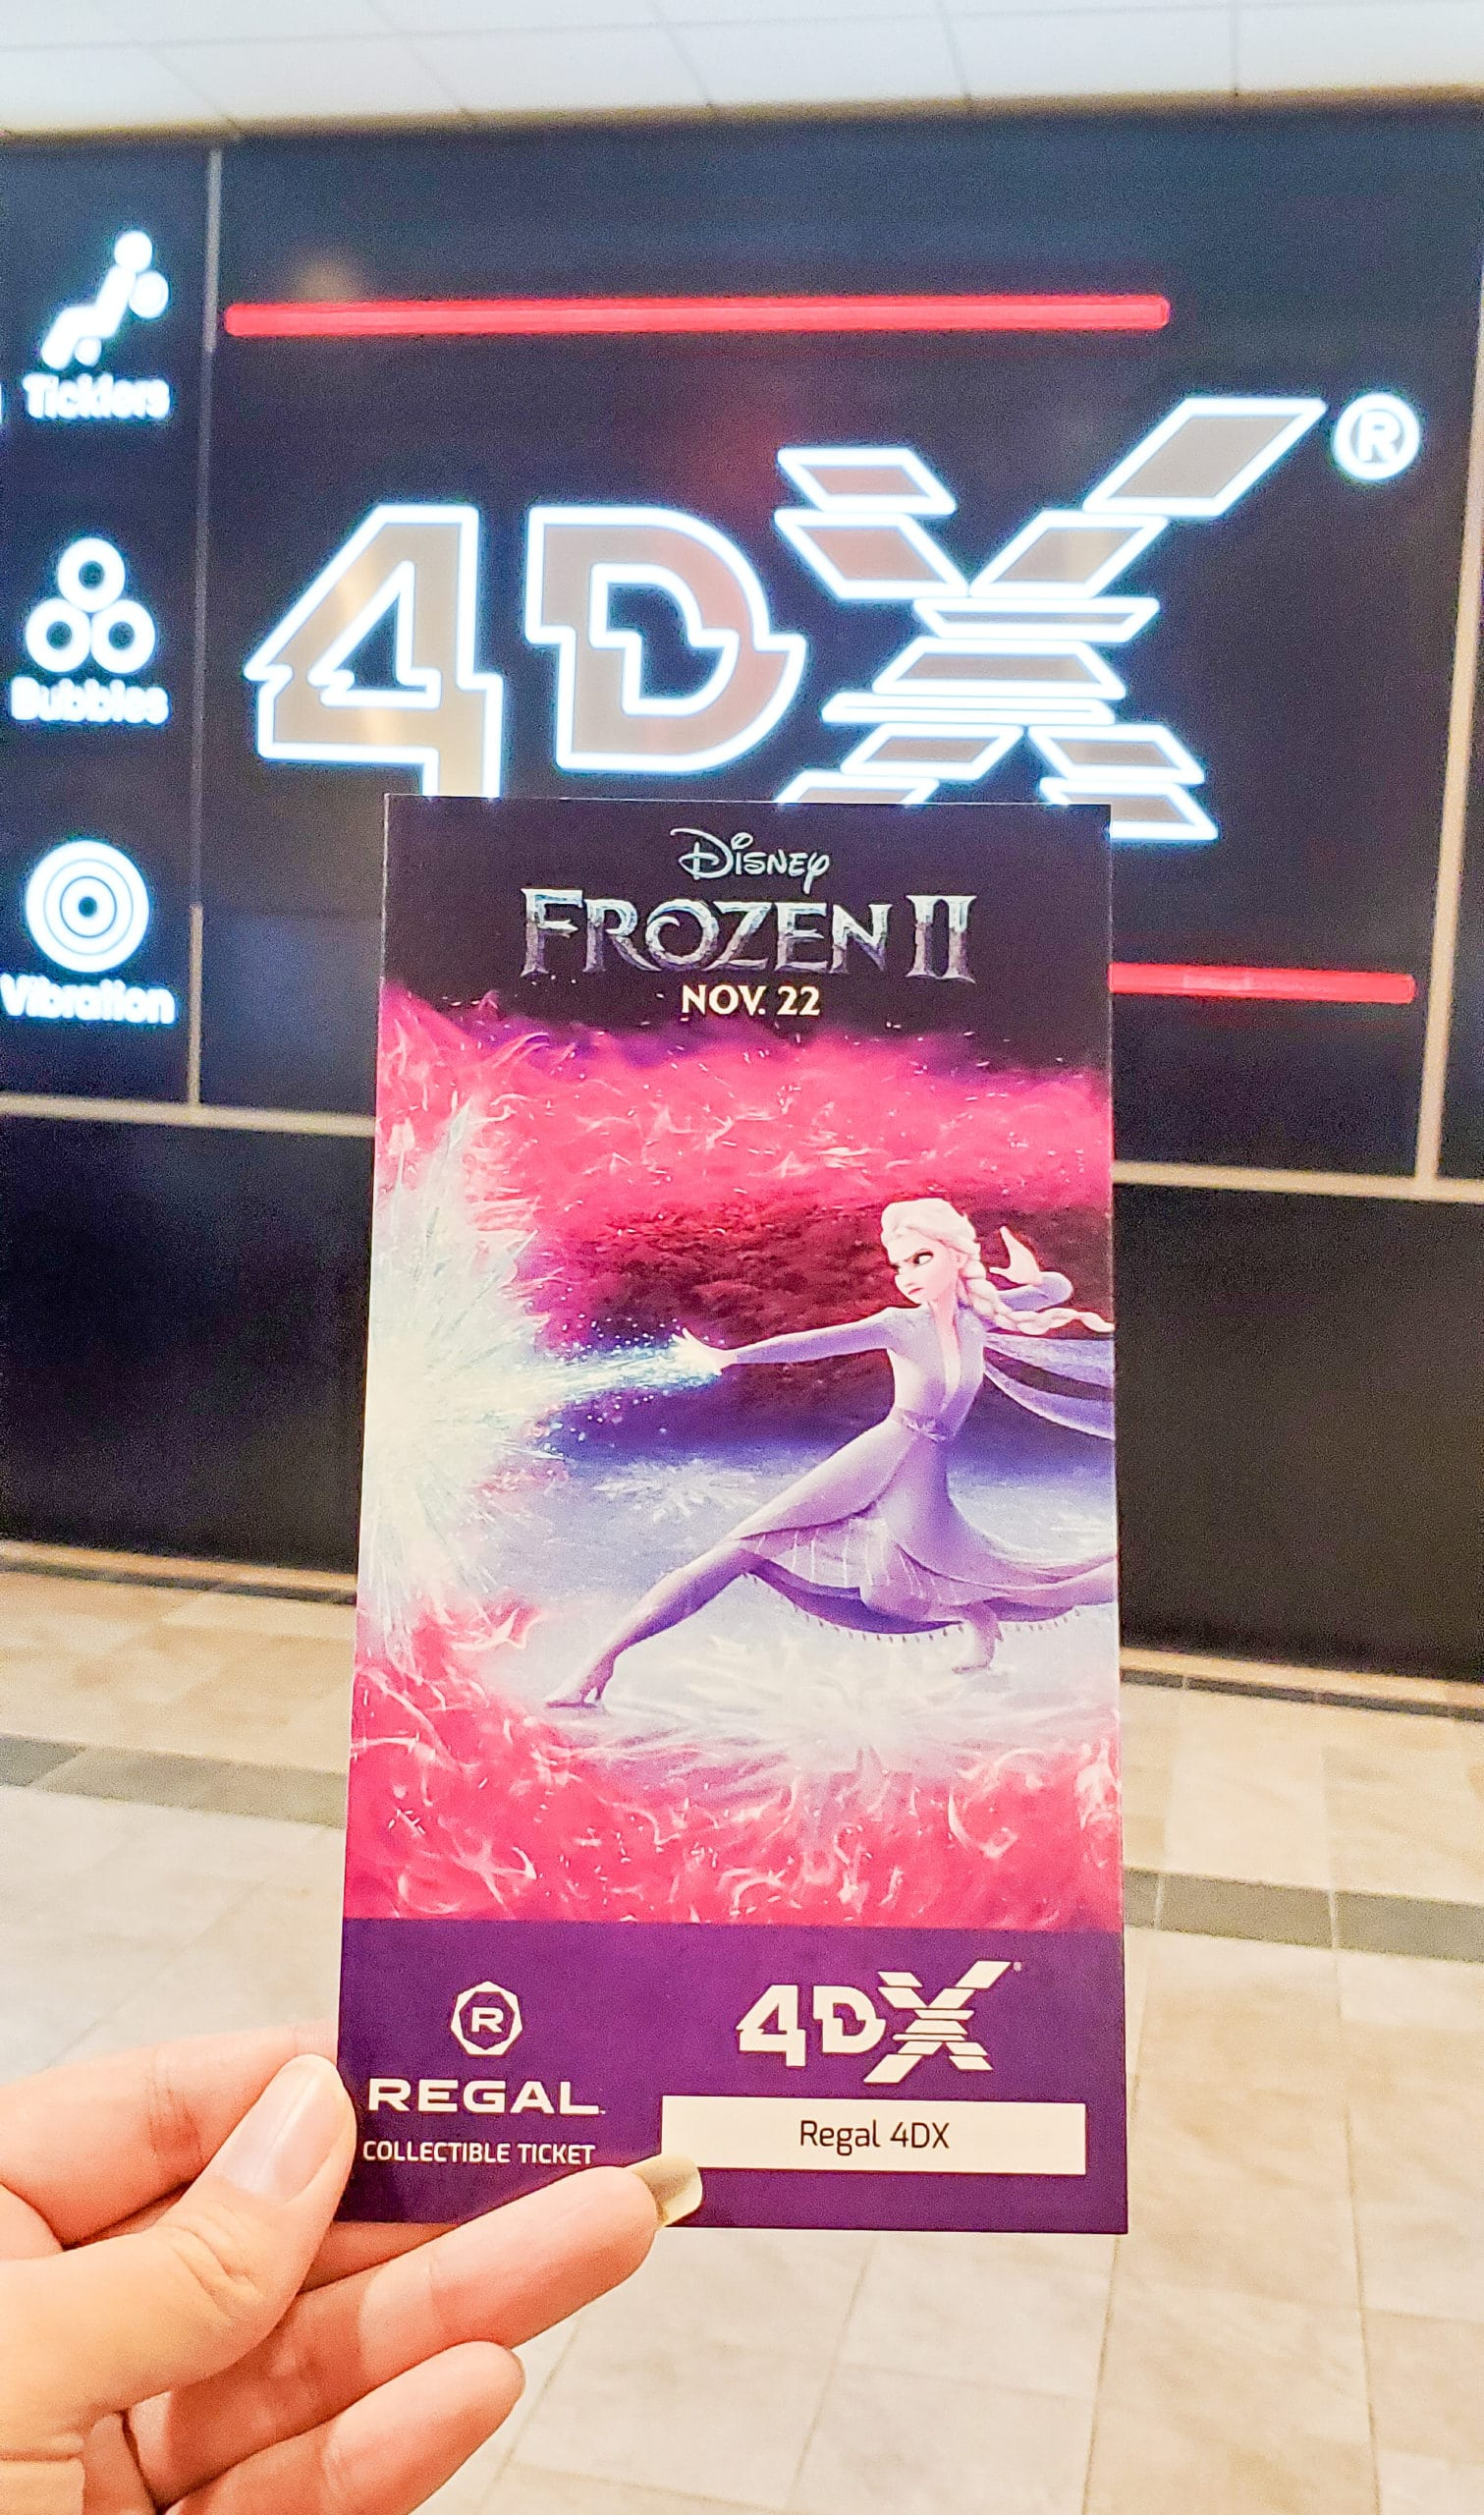 4dx Frozen 2. Why was Elsa born with magical powers? Catch the newest film Frozen 2 in the 4DX experience at your local Regal Cinema.